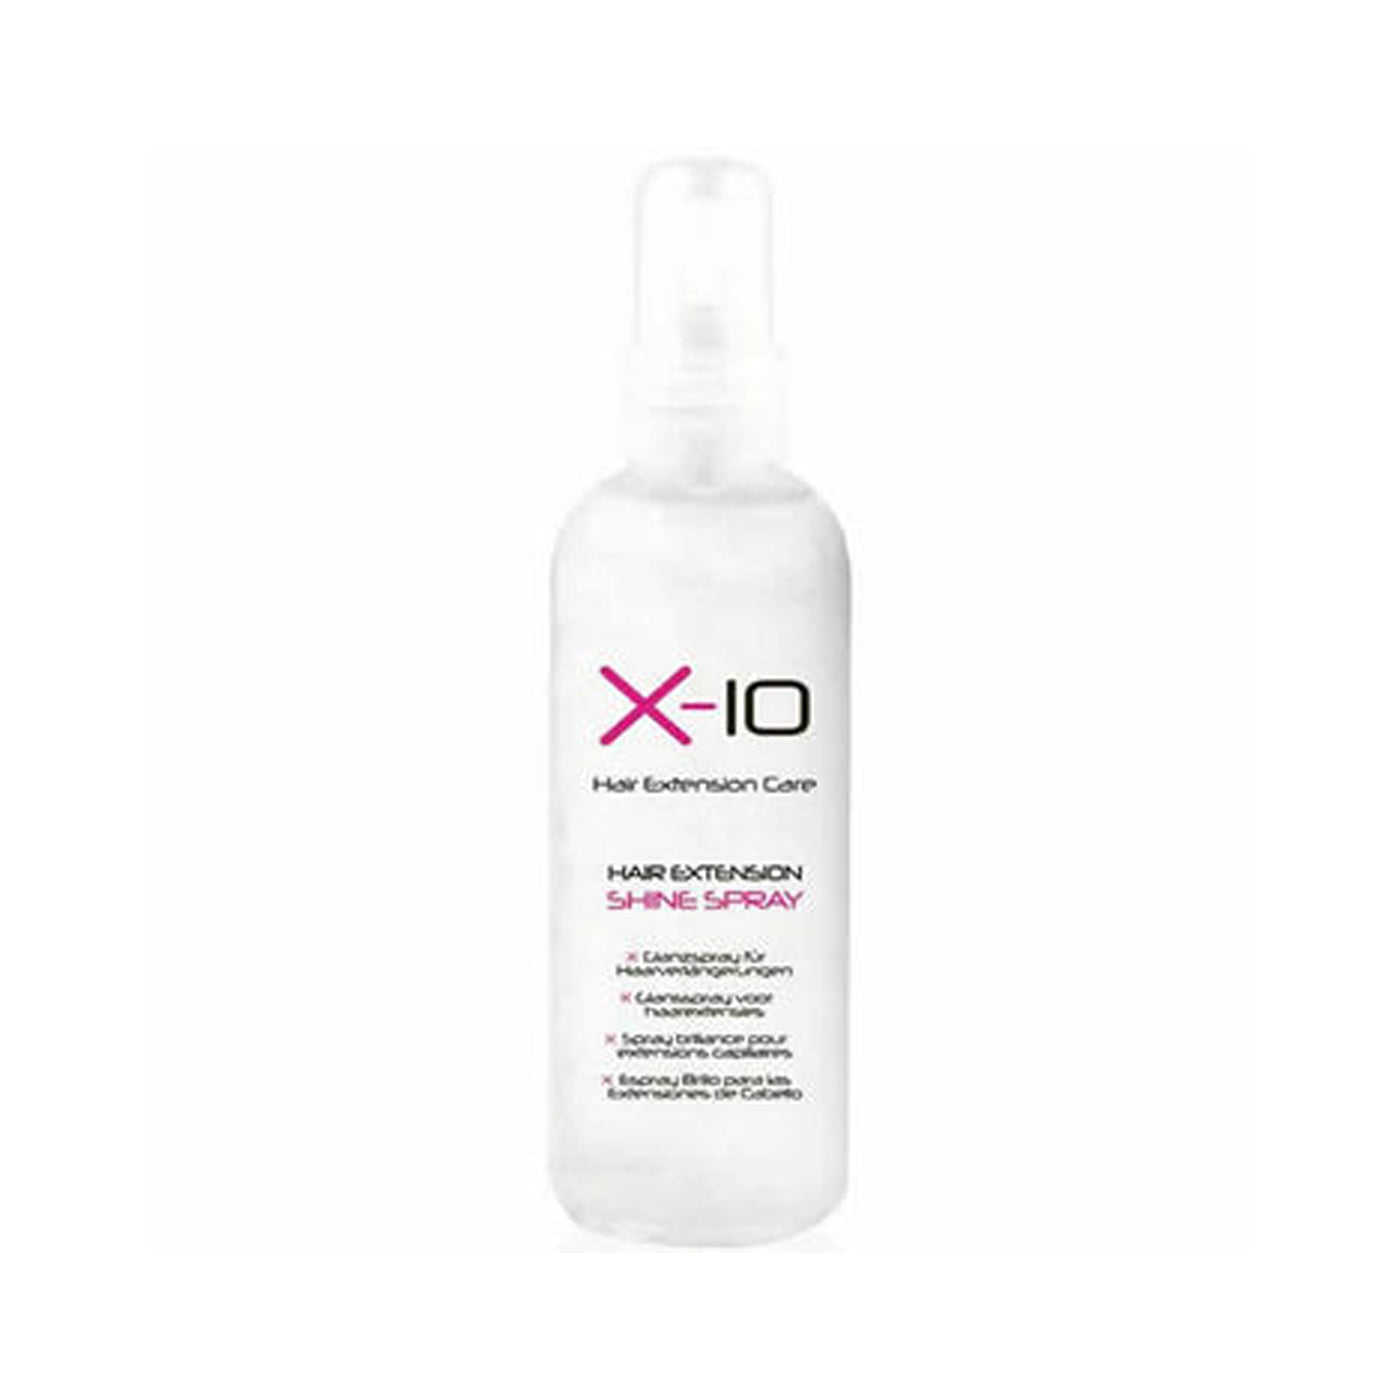 X 10 Hair Extension Care Shine Spray 125ml Ultimate Hair And Beauty